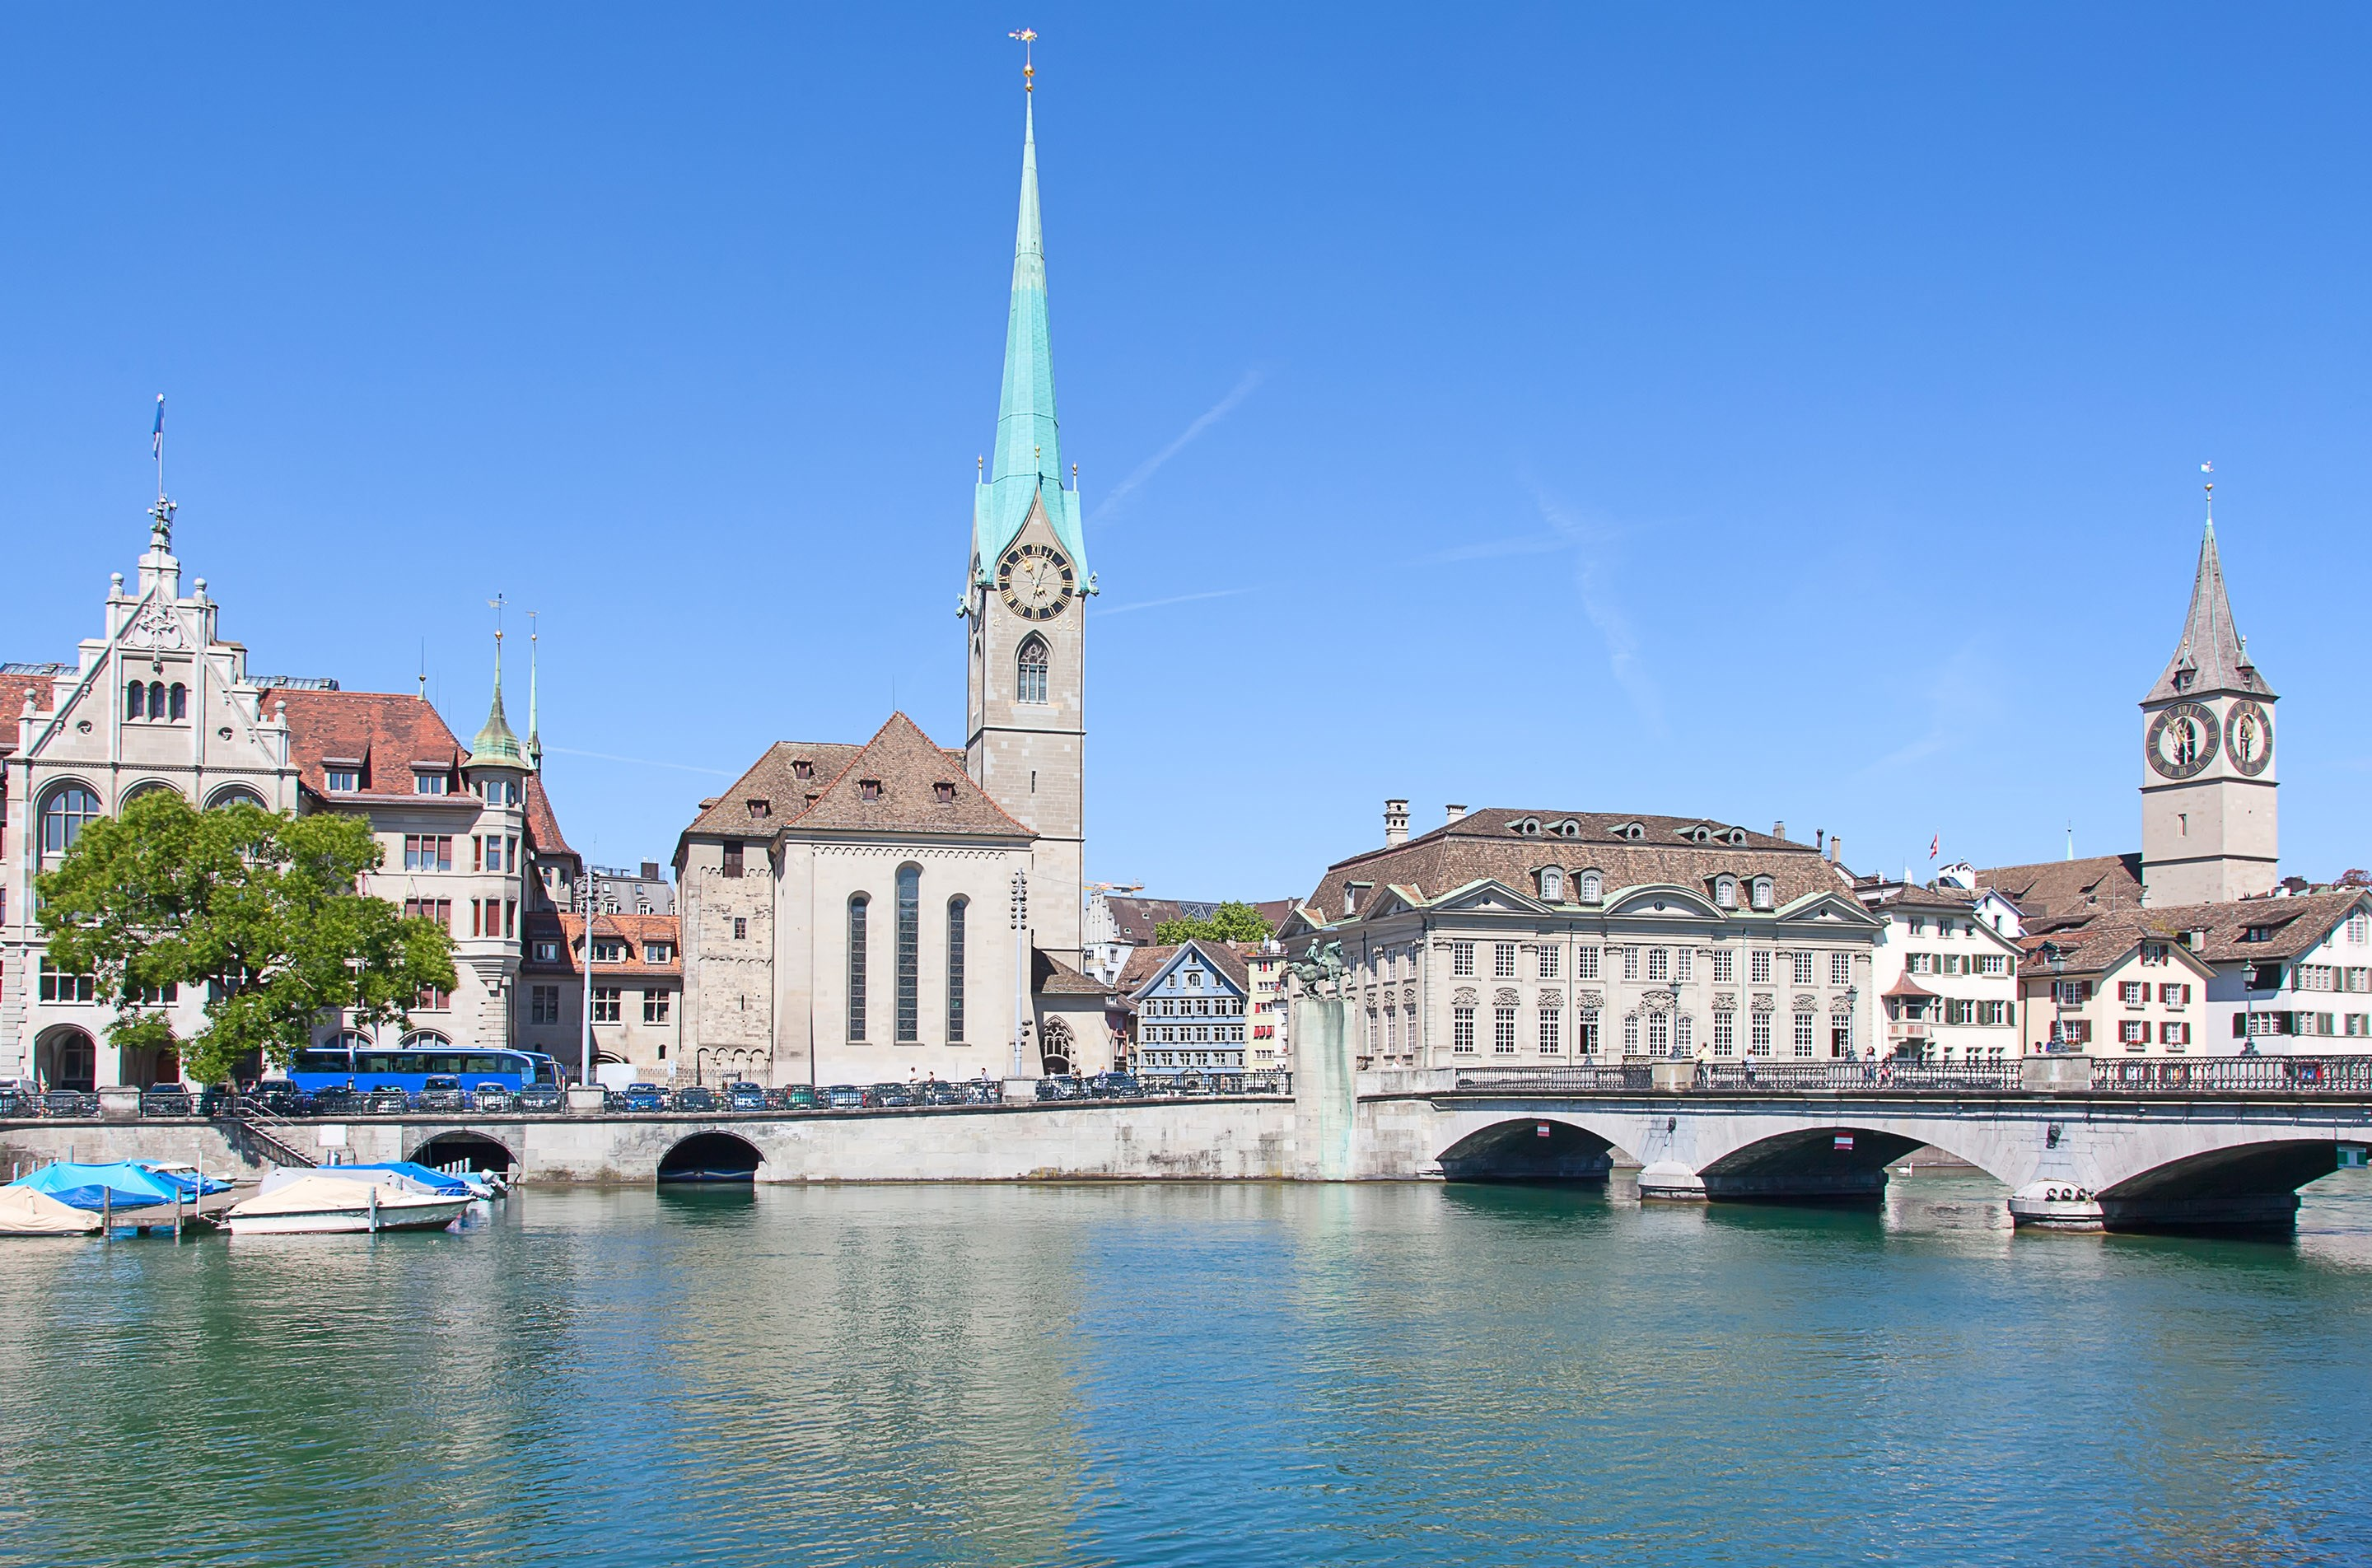 Overview of Zurich